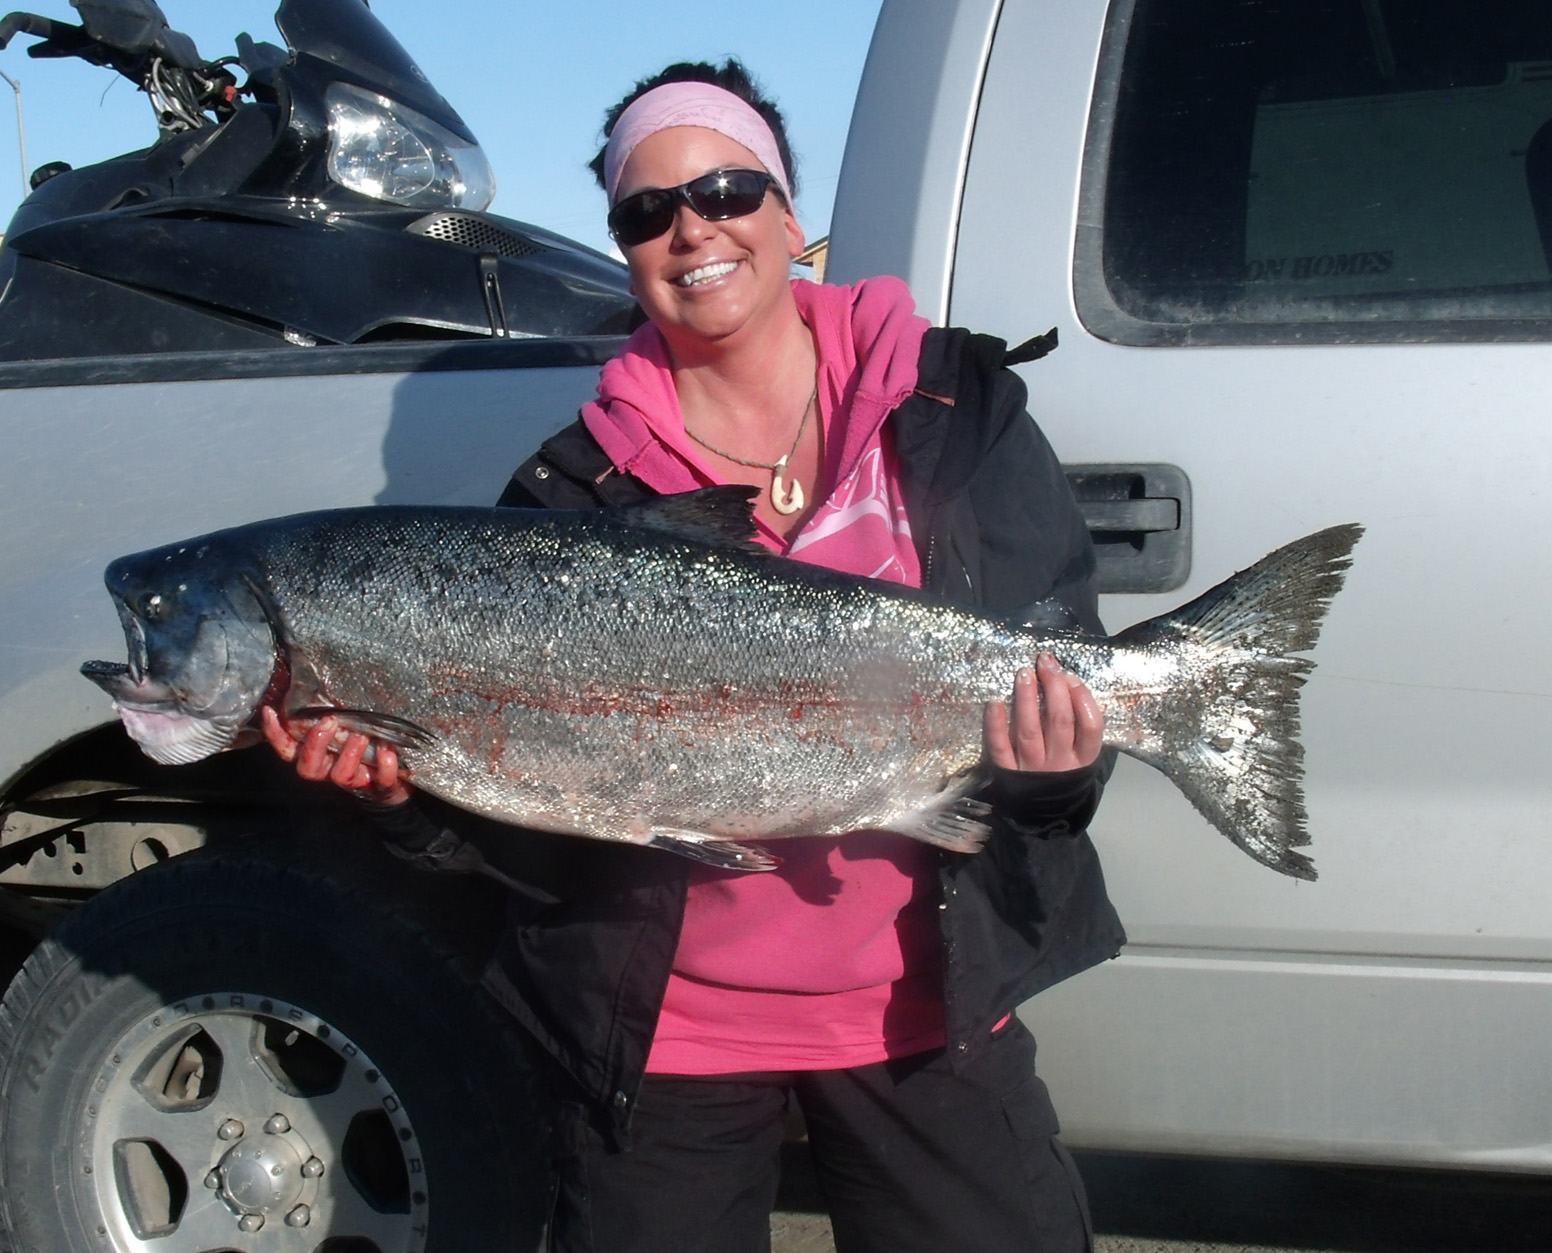 There's good news for anglers lining up for Saturday's 20th annual Winter King Salmon Tournament, sponsored by the Homer Chamber of Commerce and Visitor Center: Kings are being caught in Kachemak Bay.